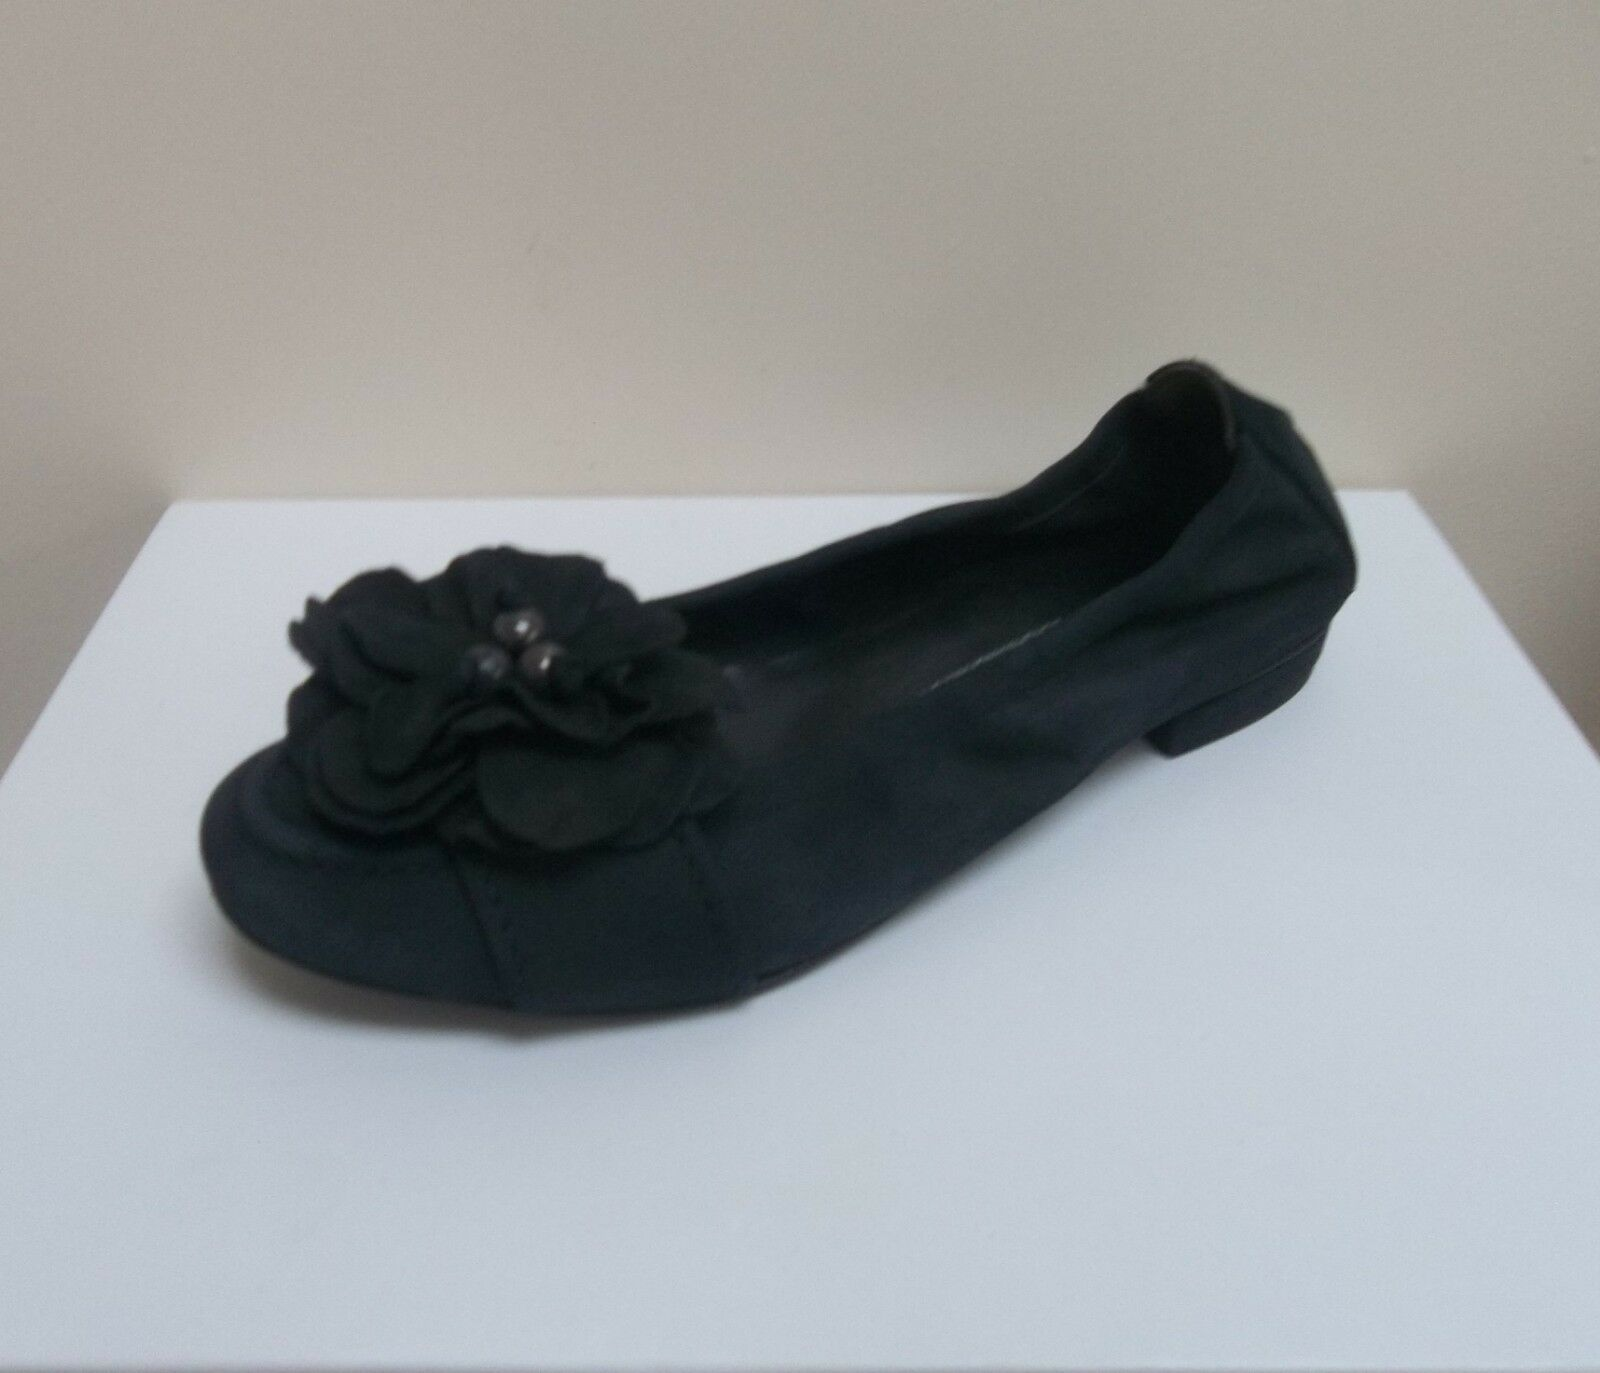 K&S Malu navy nubuck leather 4.5/EU flower detail flats, UK 4.5/EU leather 37.5,   BNWB 9a8c9b